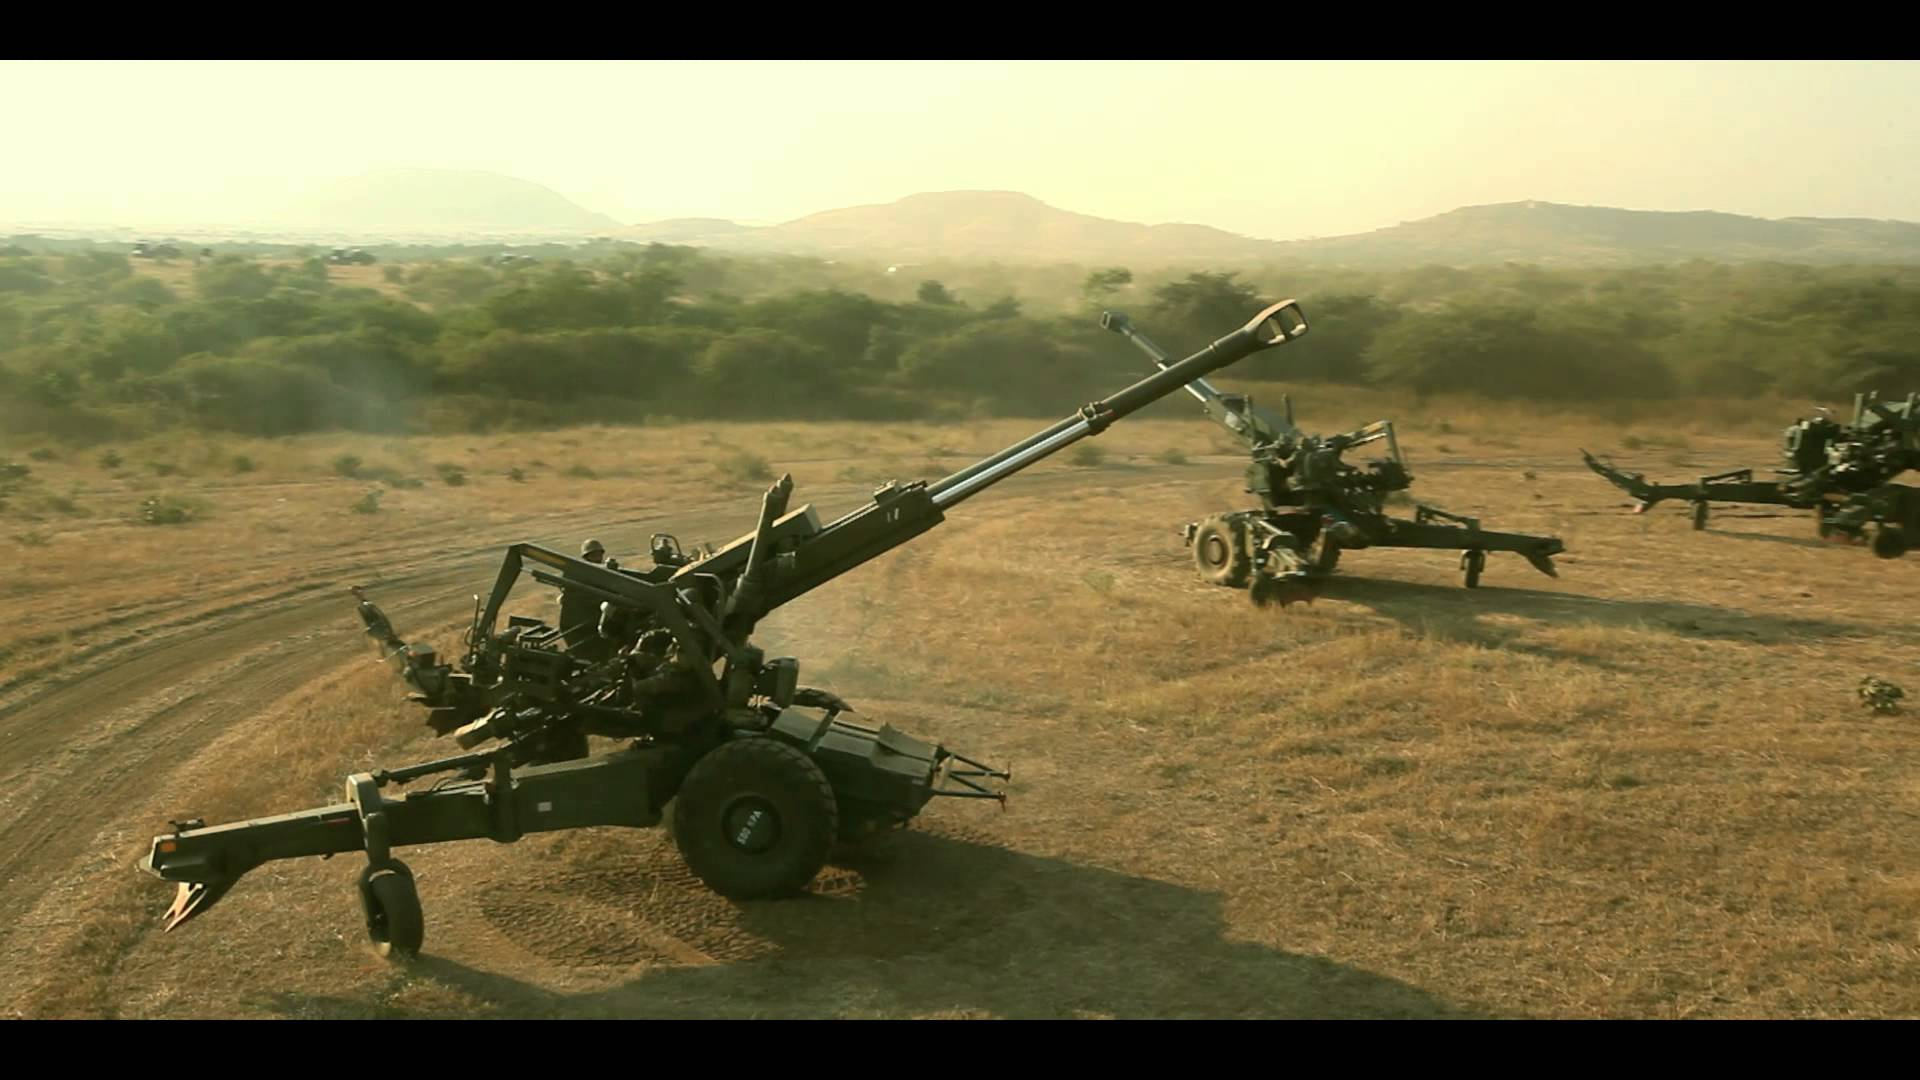 Field Artillery Modernization Program of the Indian Army.